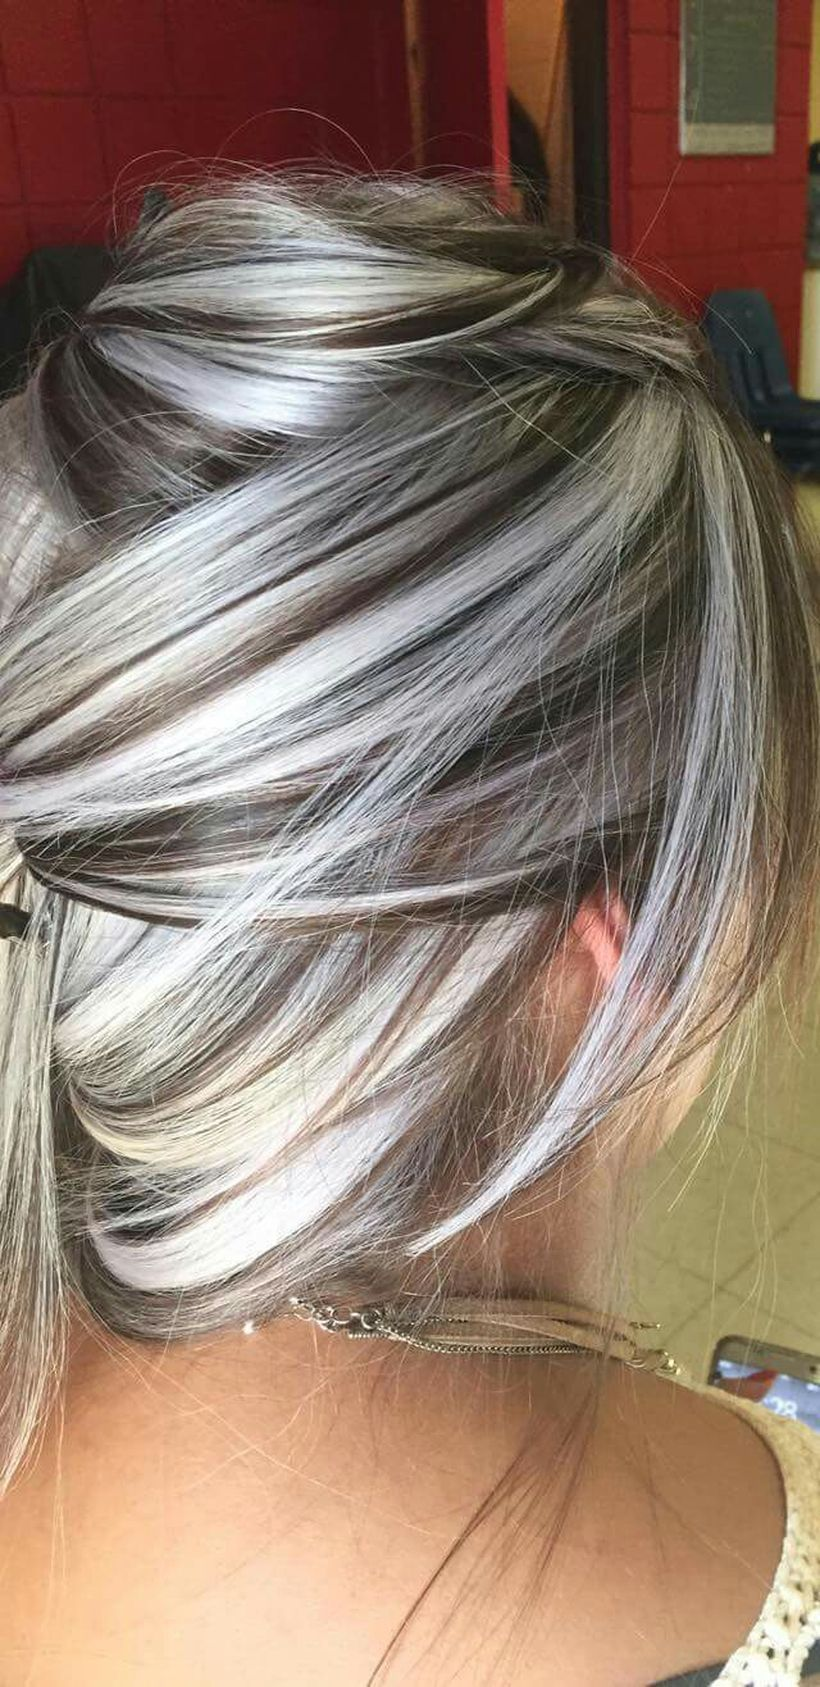 This best hair color ideas in image is part from best